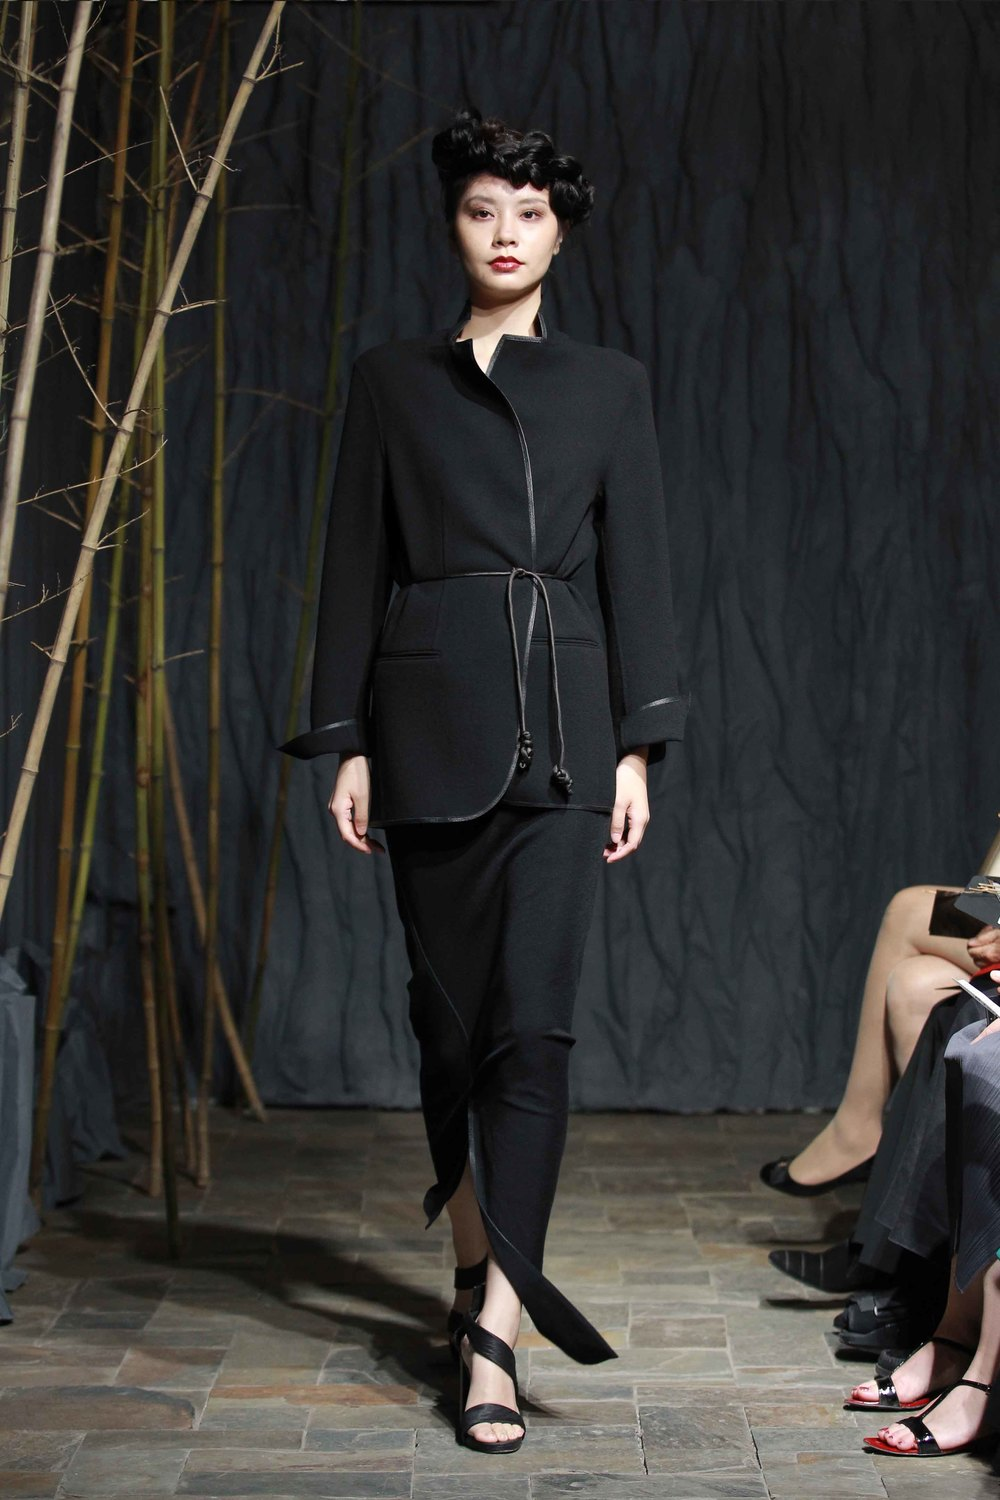 Unisex black wool crepe double-faced jacket with trim//black asymmetric woollen jersey skirt